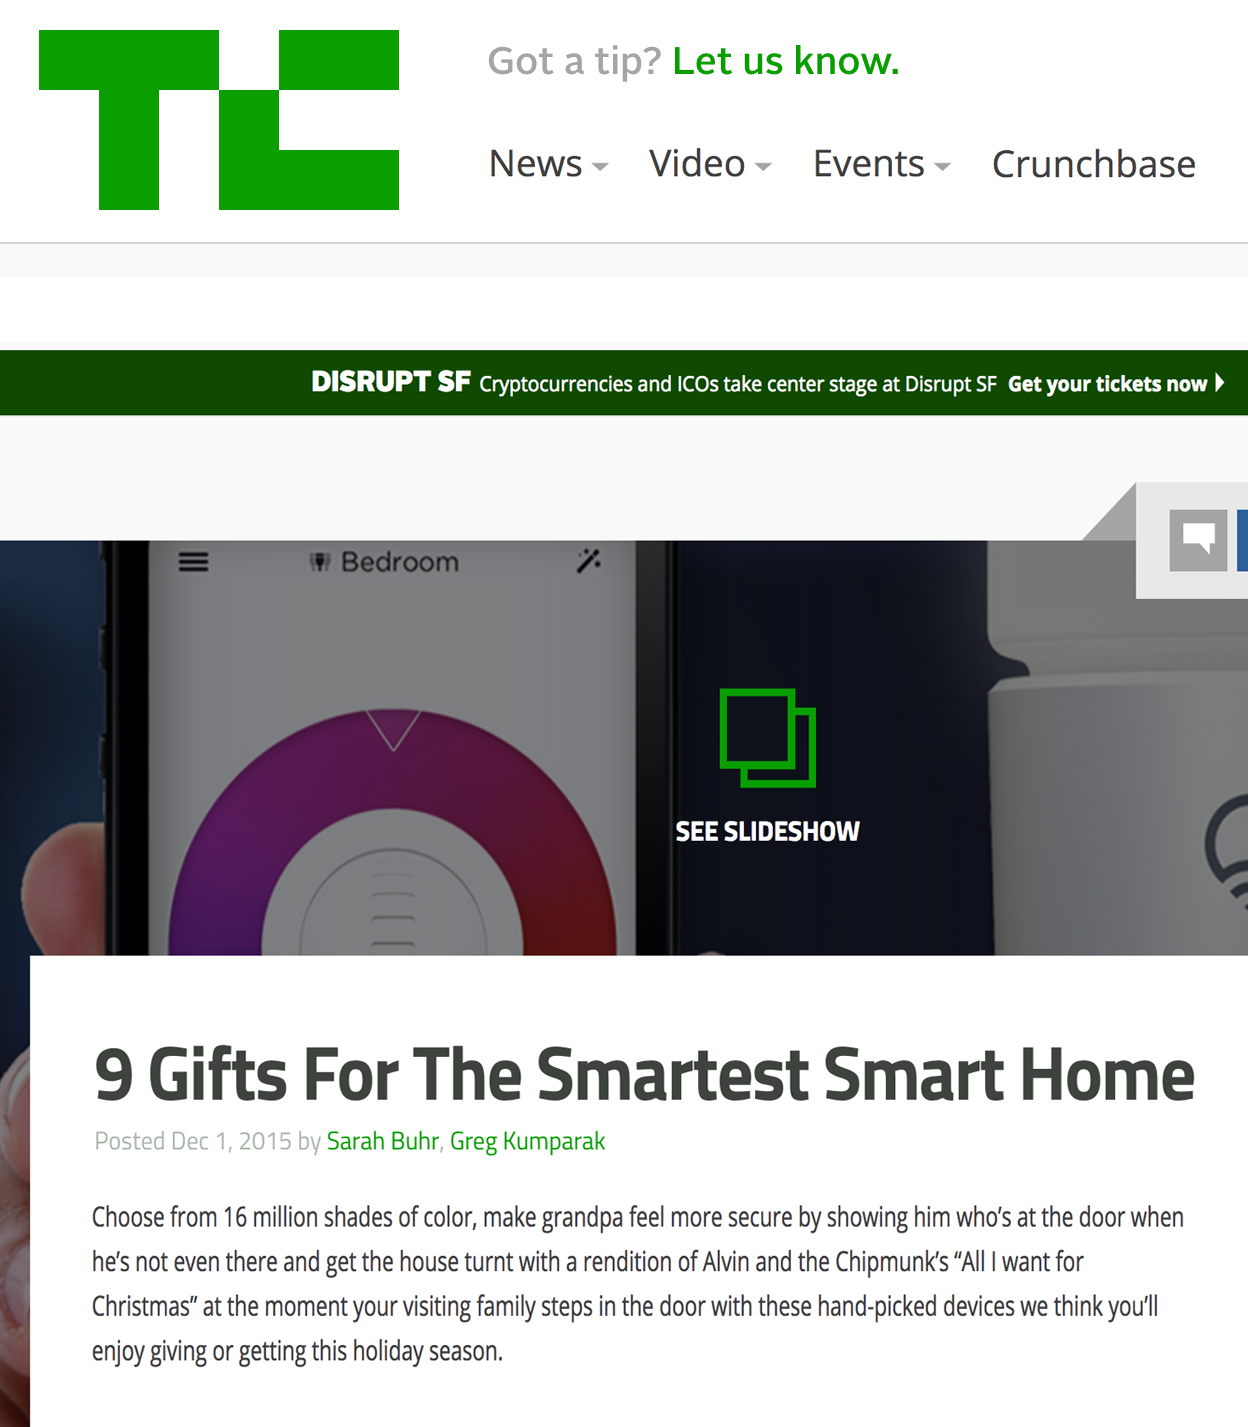 Holiday Gift Guide PR : BIGfish PR : Tech Crunch : Tech PR